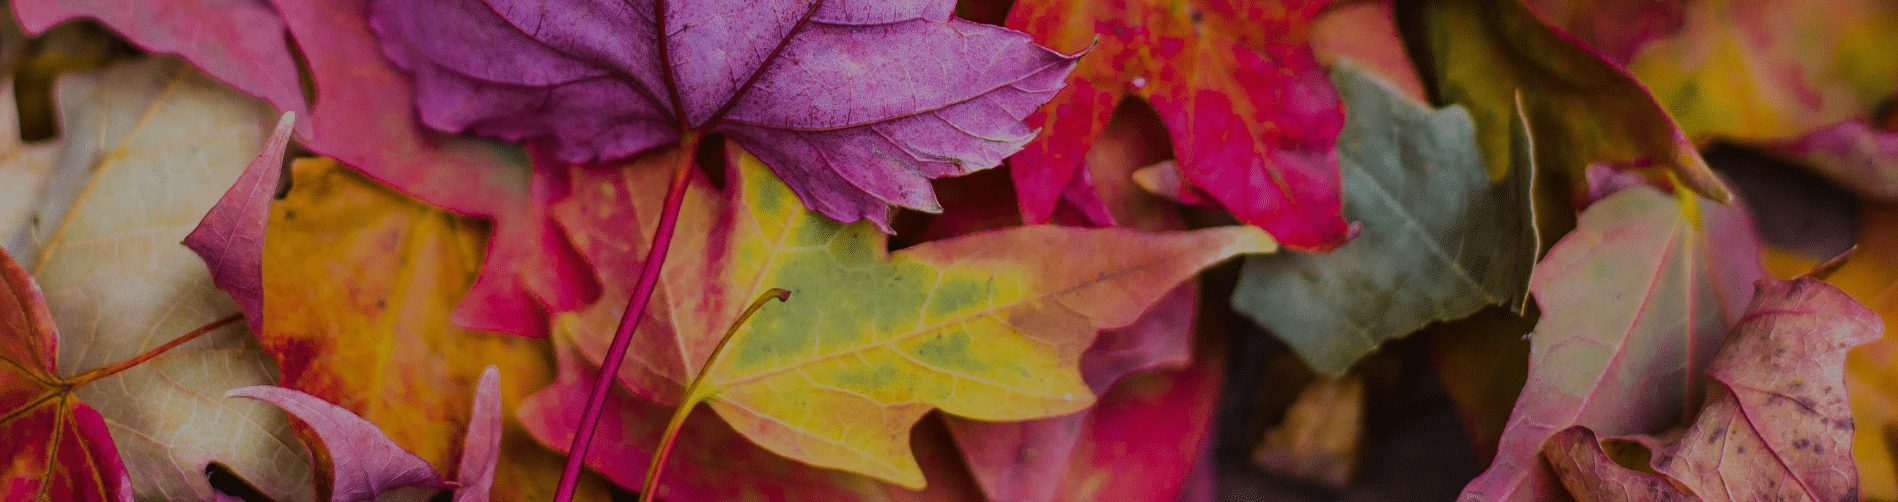 Autumn Leaves in Purple, Yellow & Pink